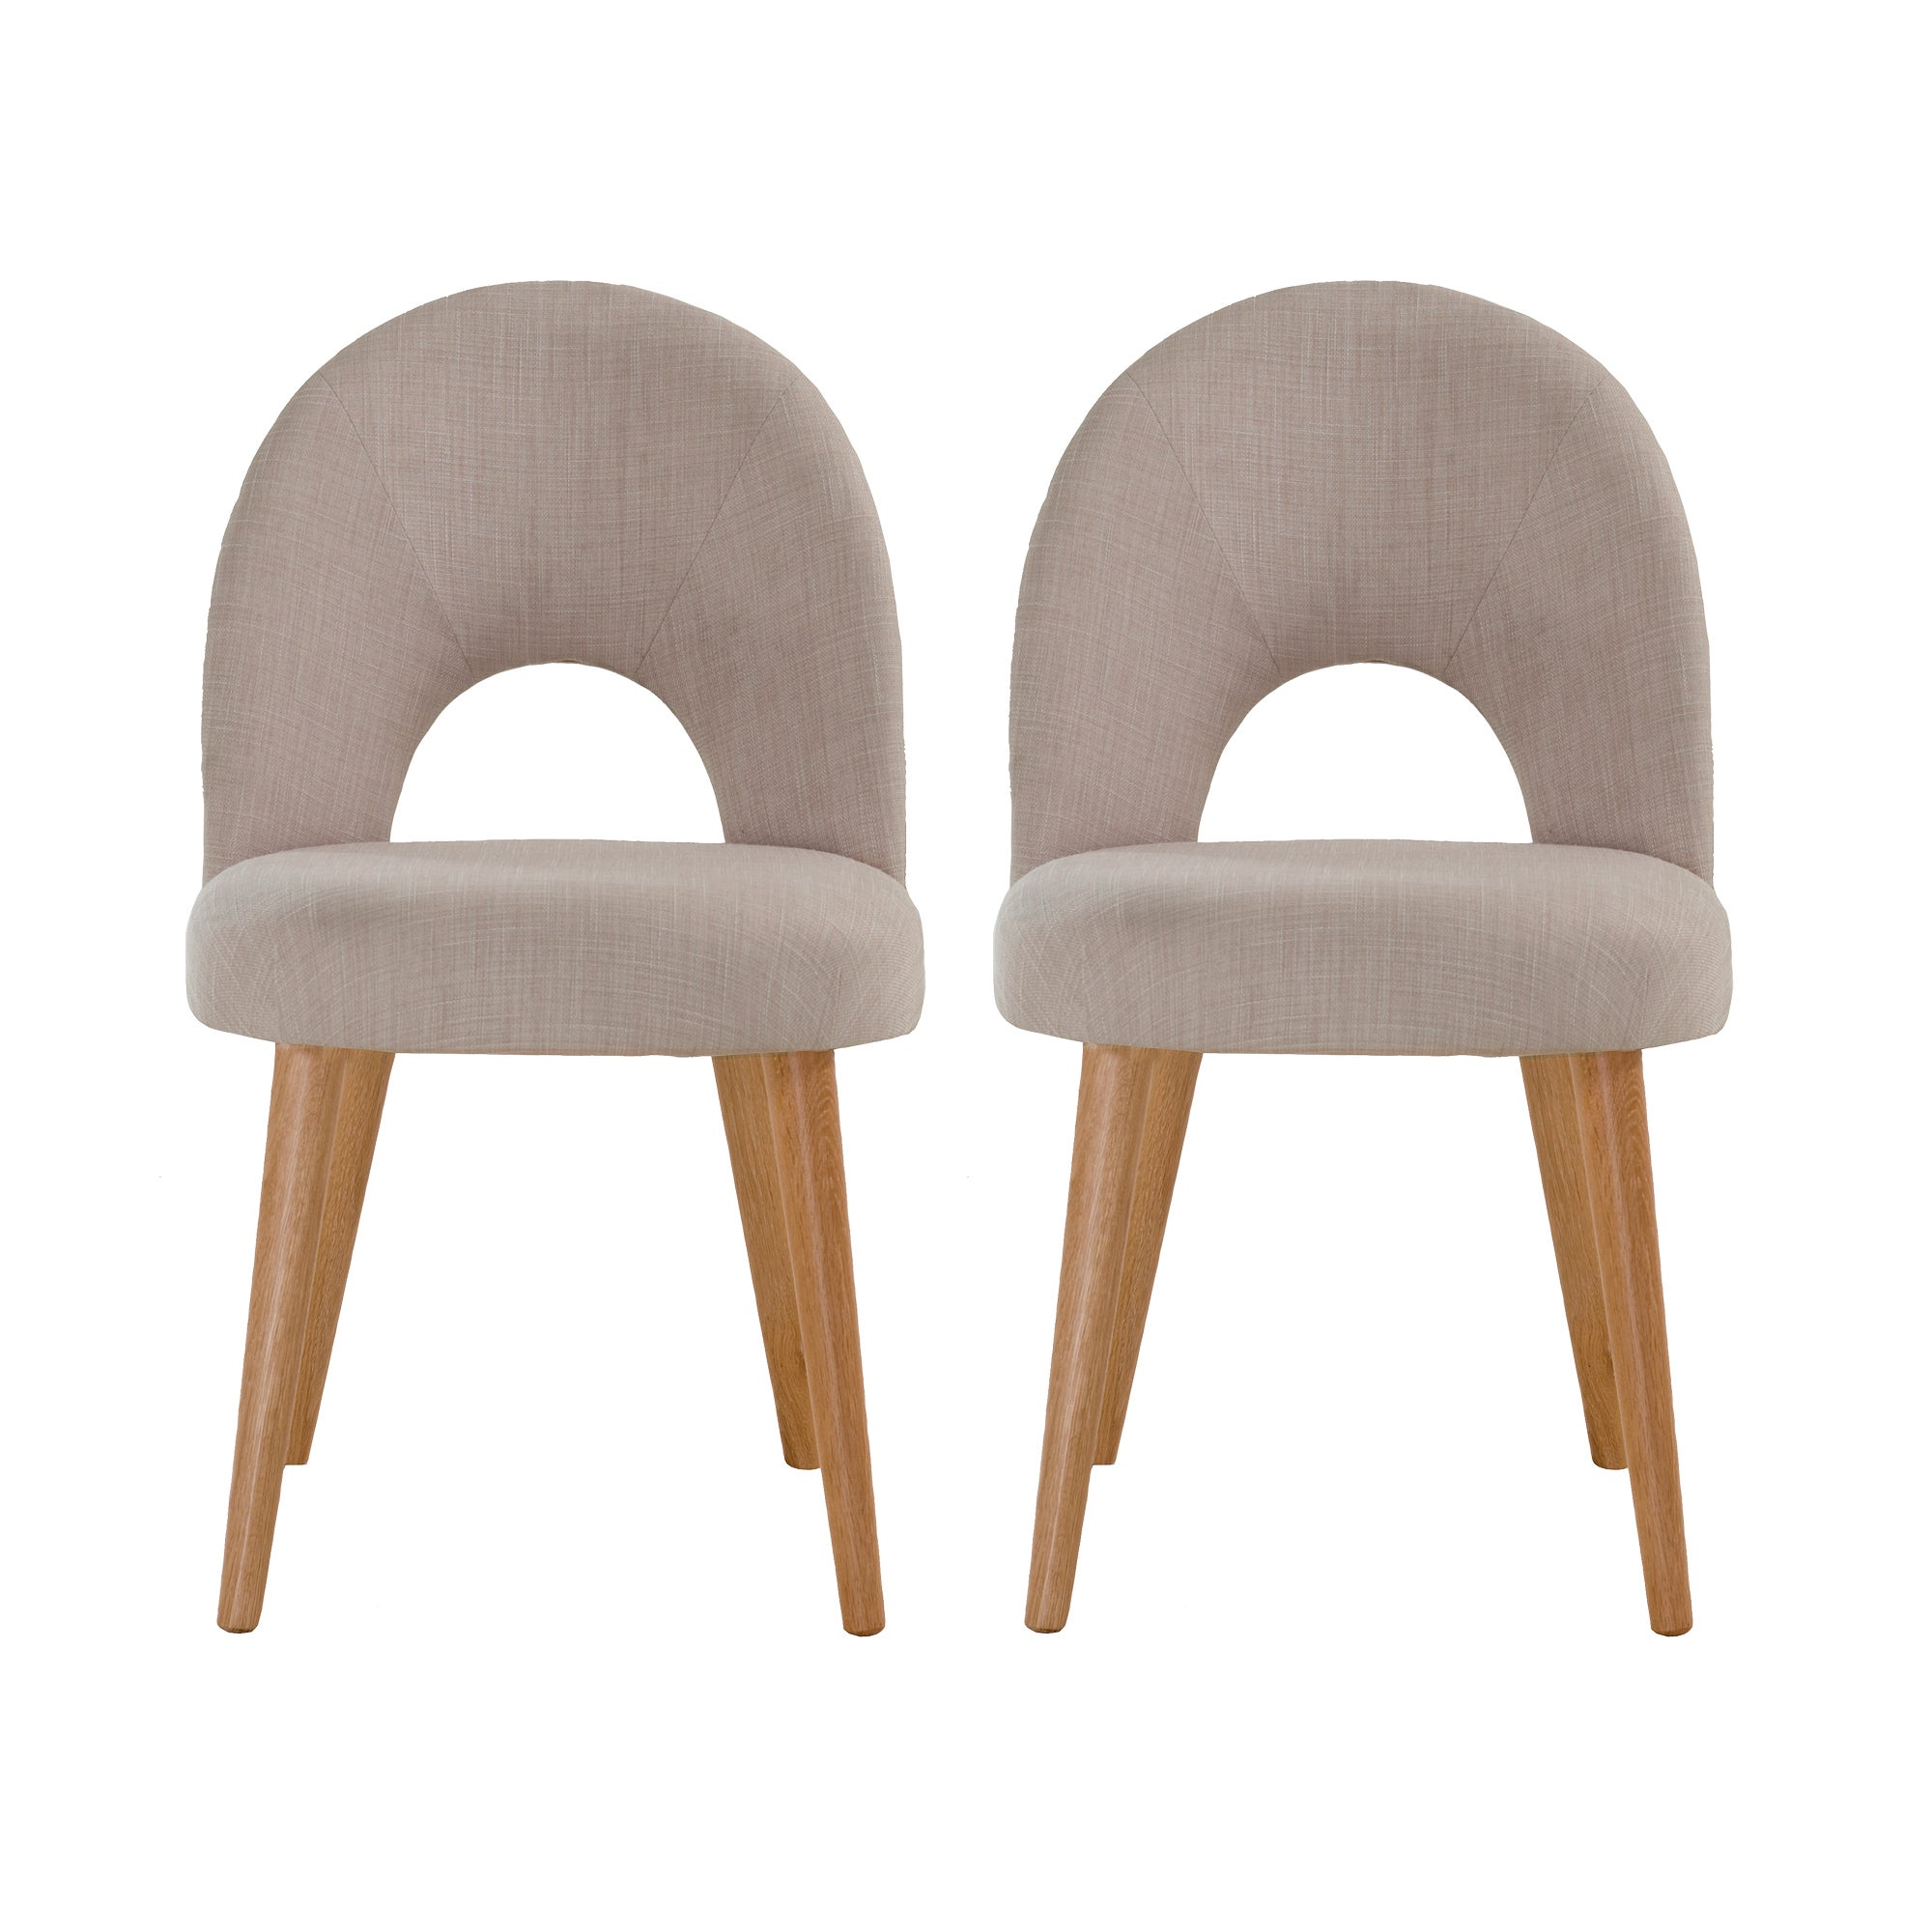 Skandi Oak Pair of Upholstered Chairs